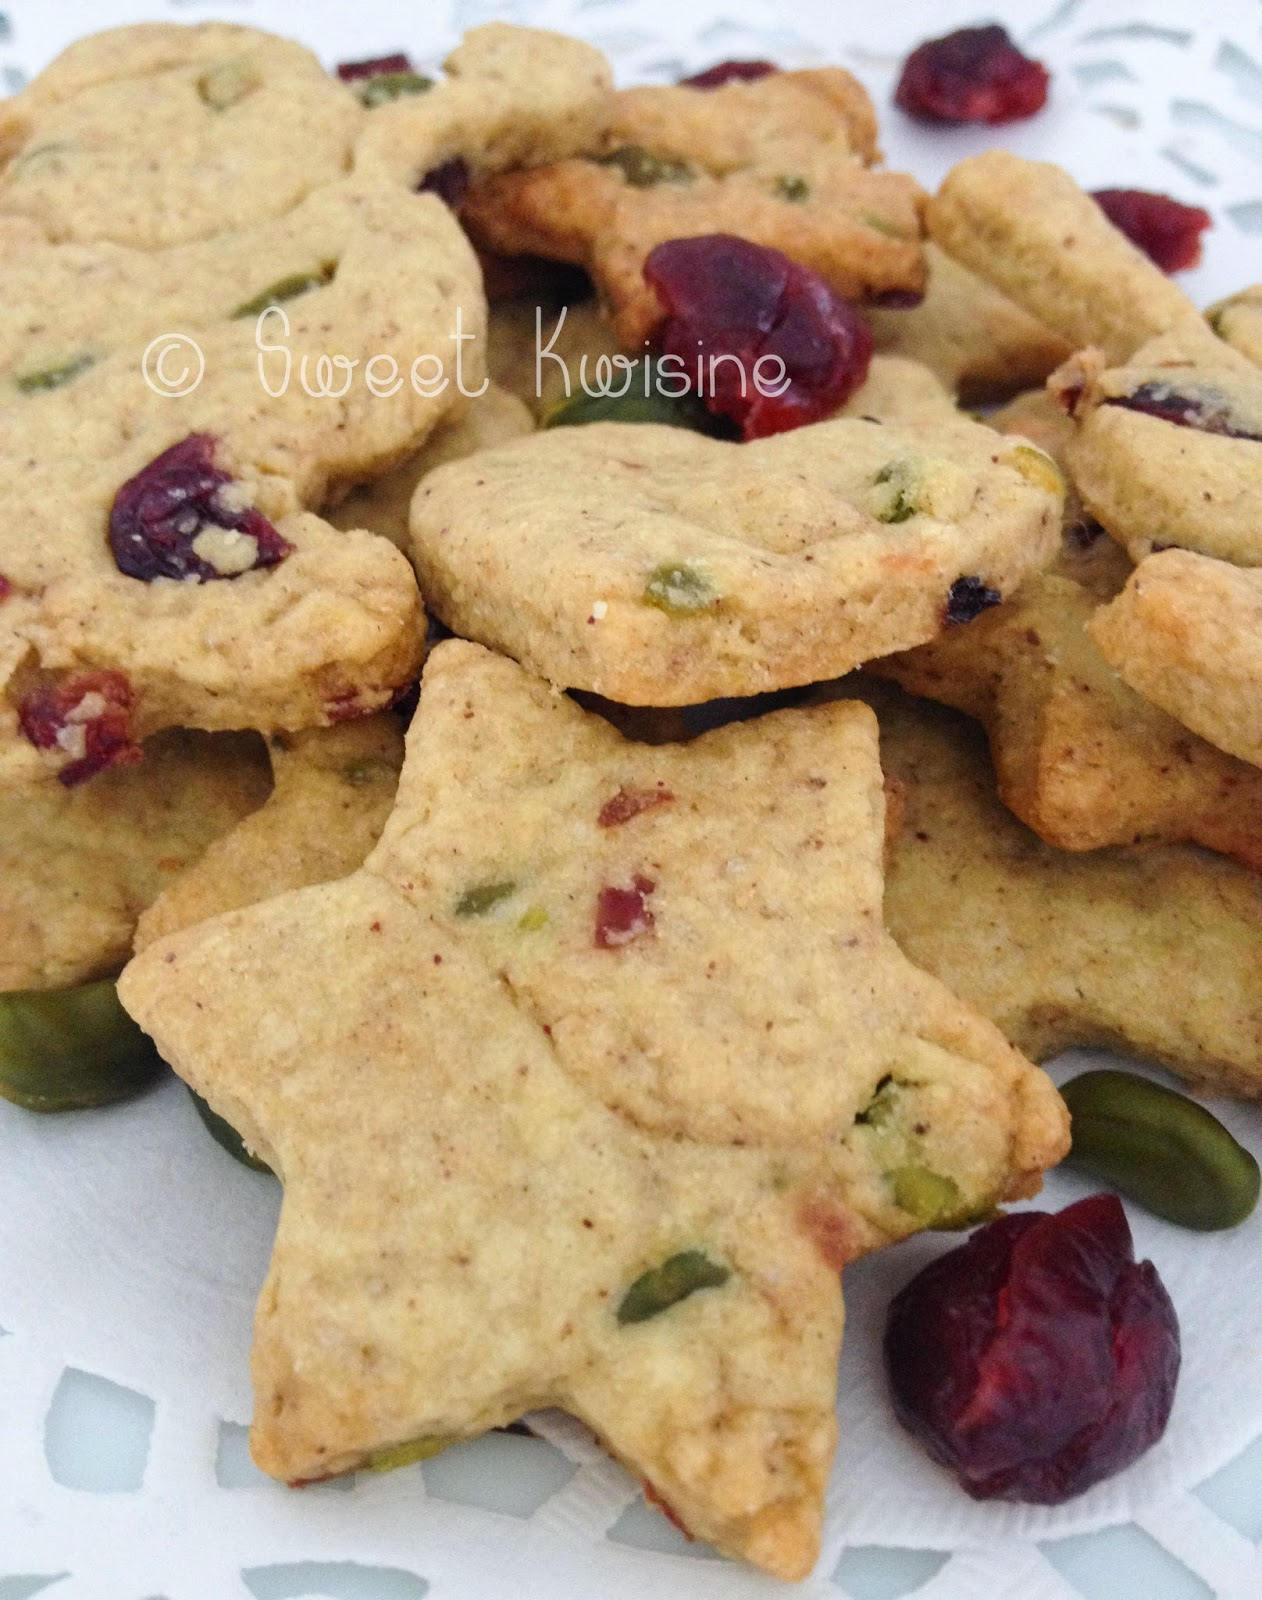 Super Sweet Kwisine: Les biscuits de Noël aux pistaches et cranberries  LT27